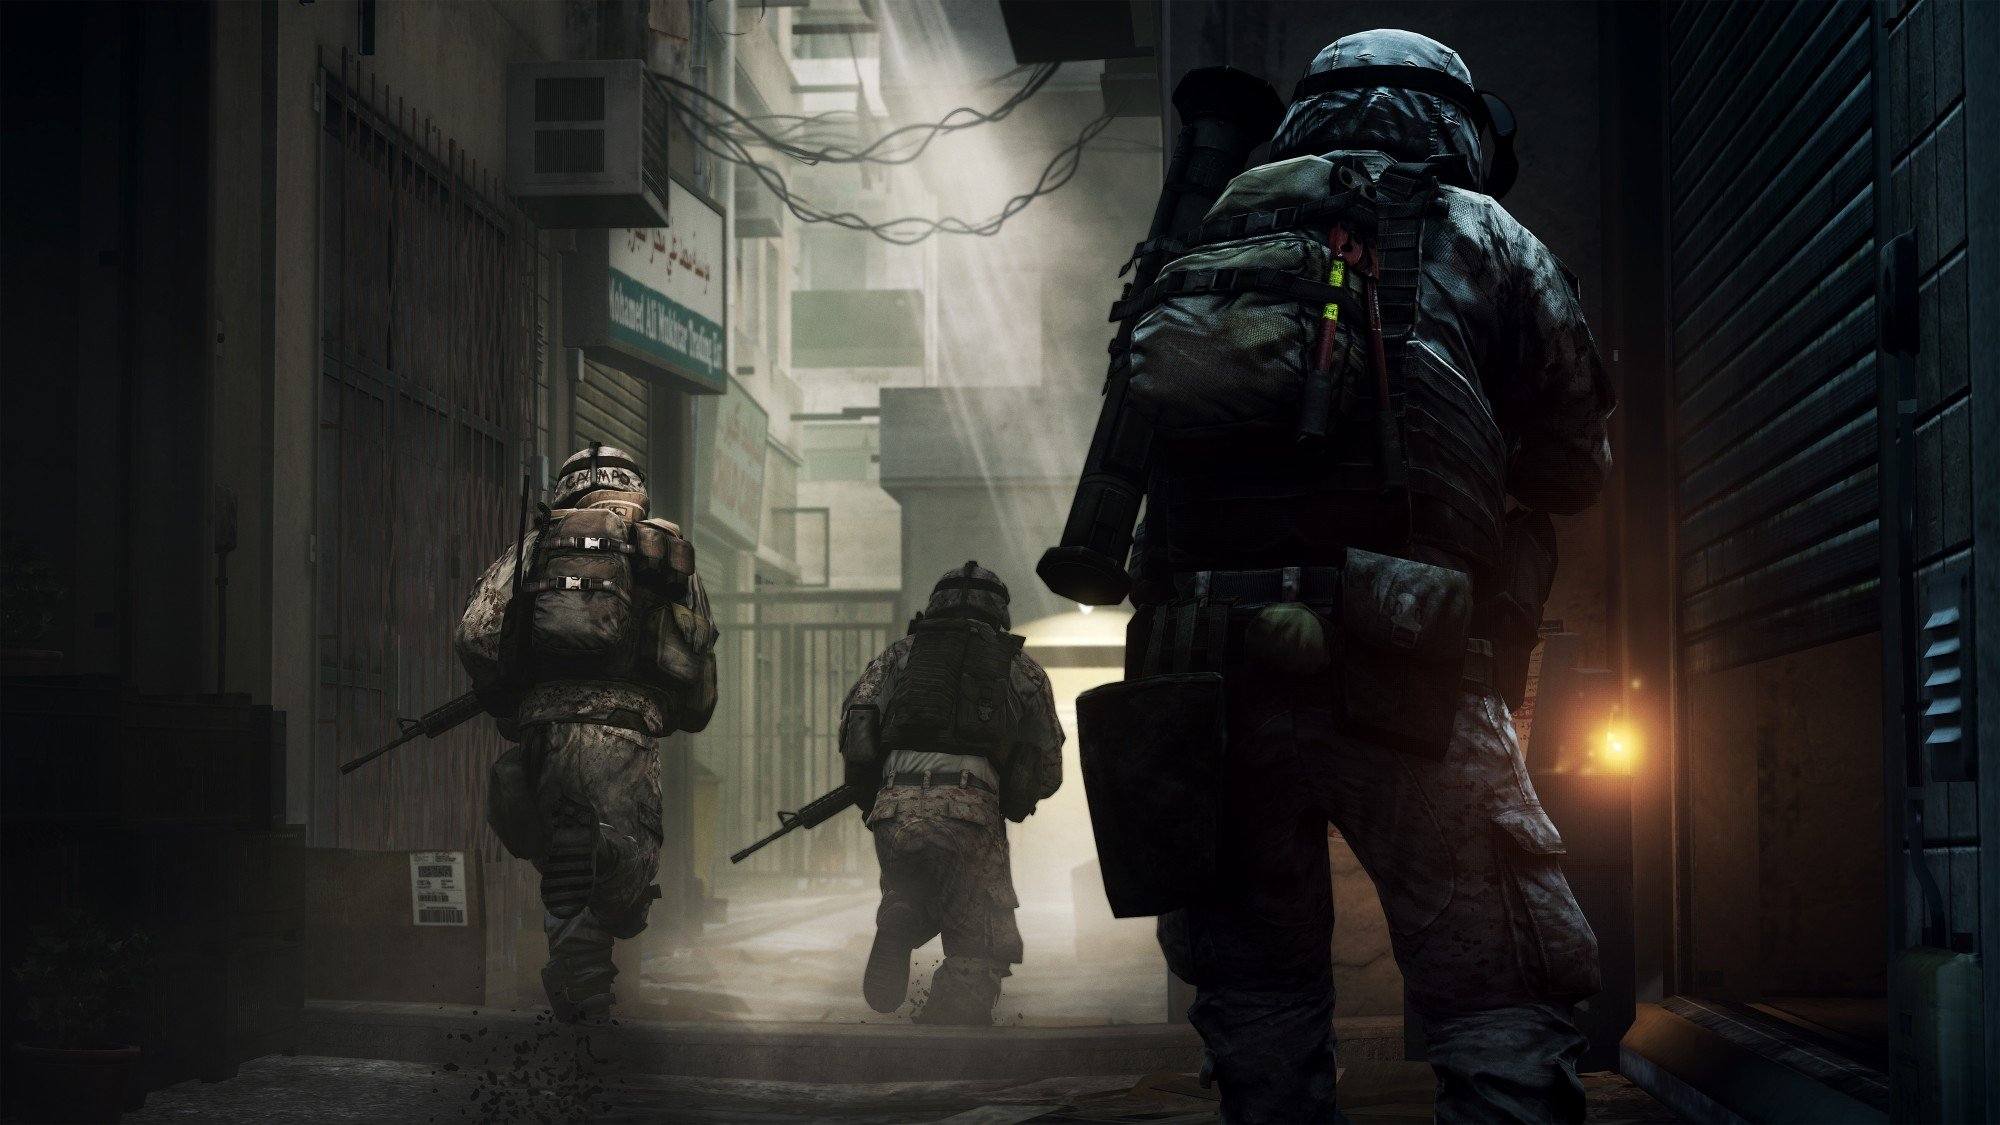 Battlefield 3 HD Concept Art And In-Game Screenshots Released #16605